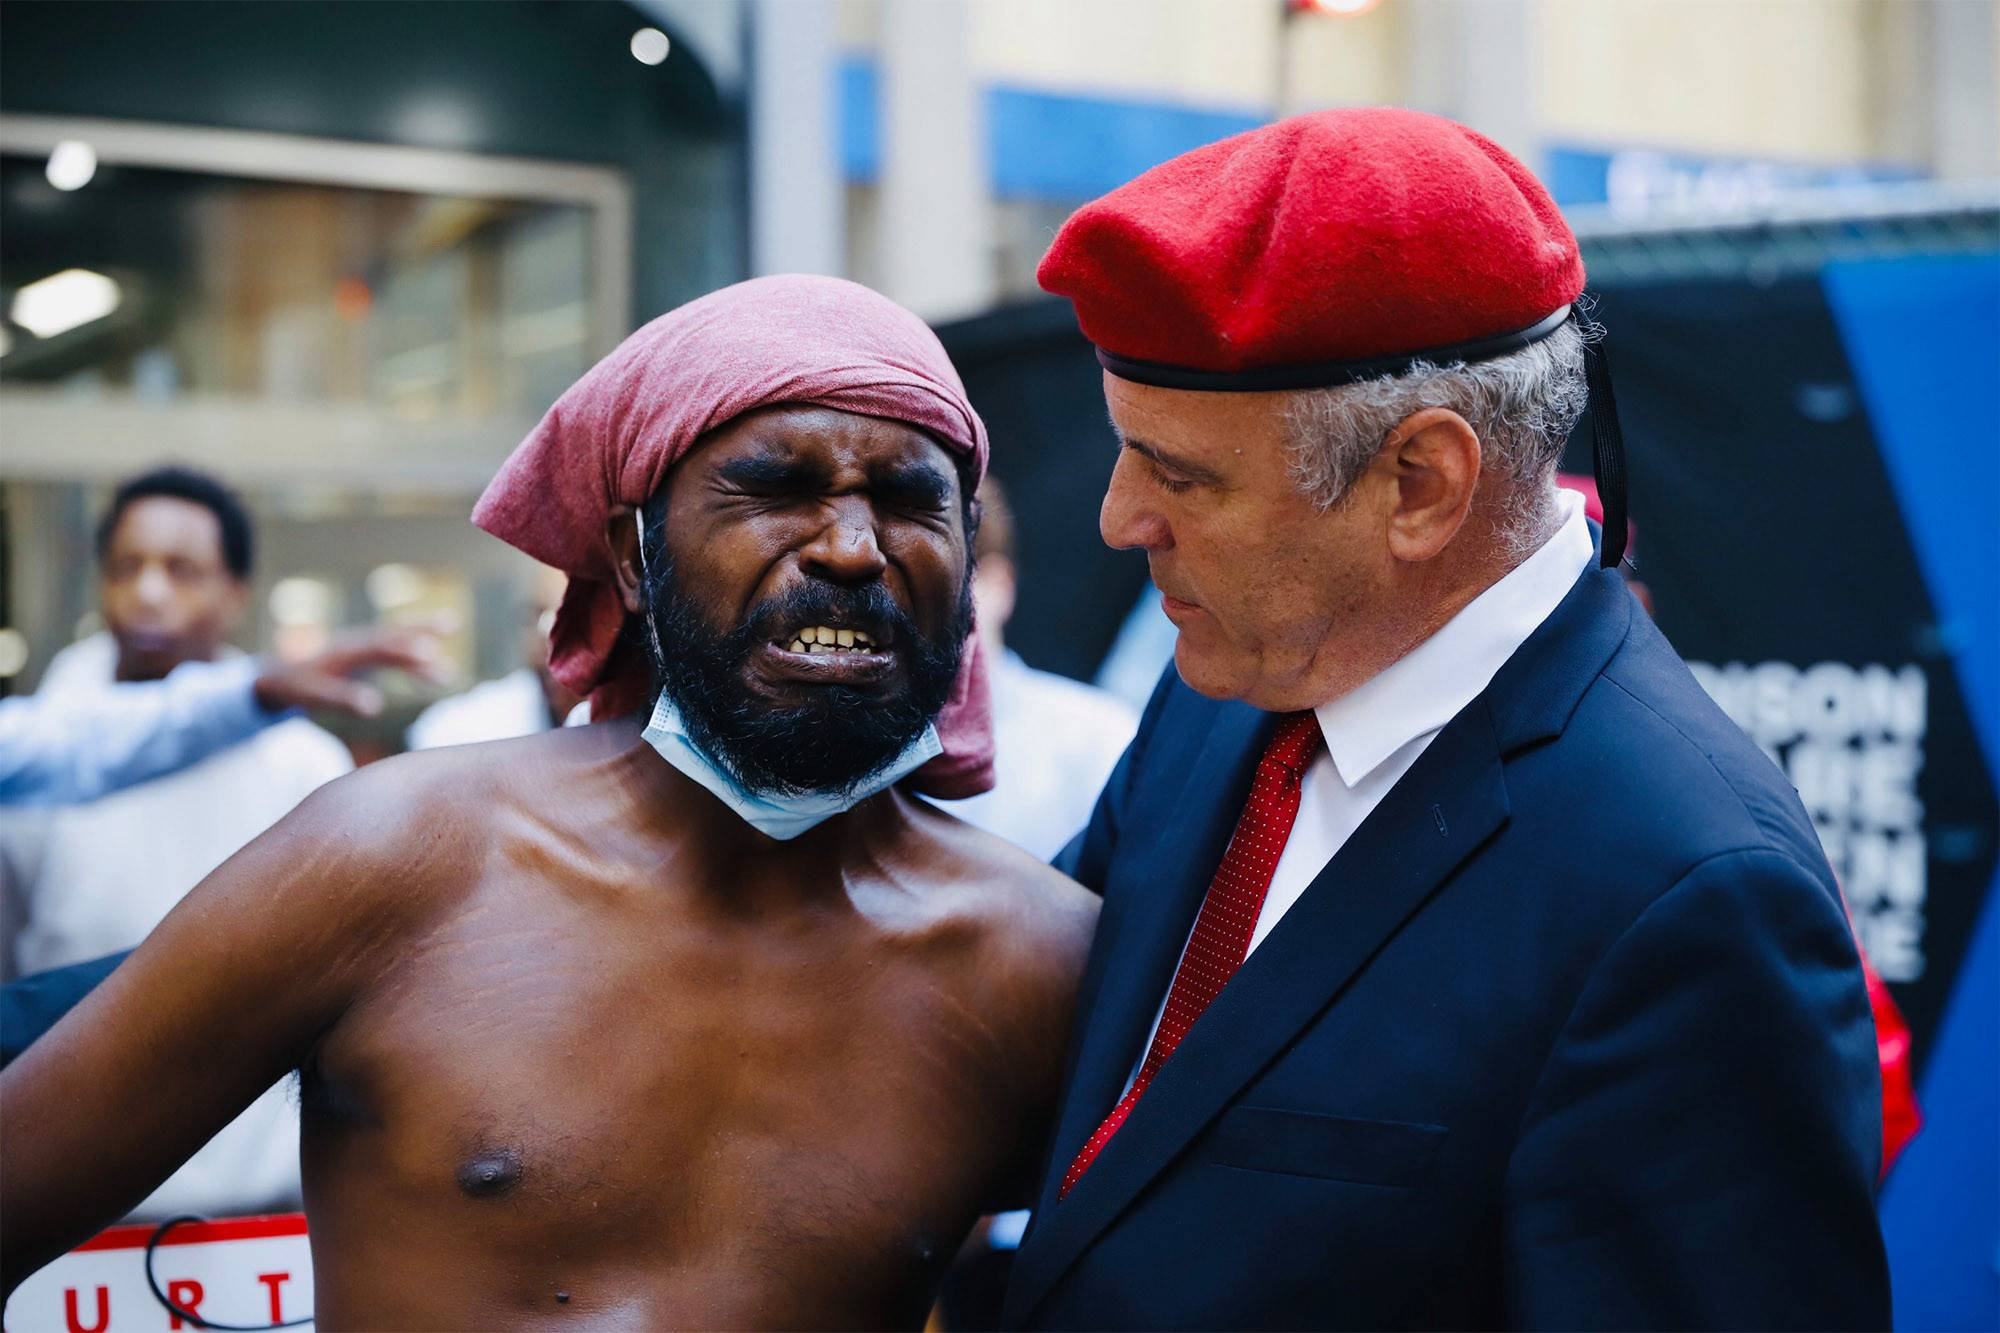 """Curtis Sliwa called the situation a """"humanitarian crisis"""" and """"Dante's Inferno."""""""